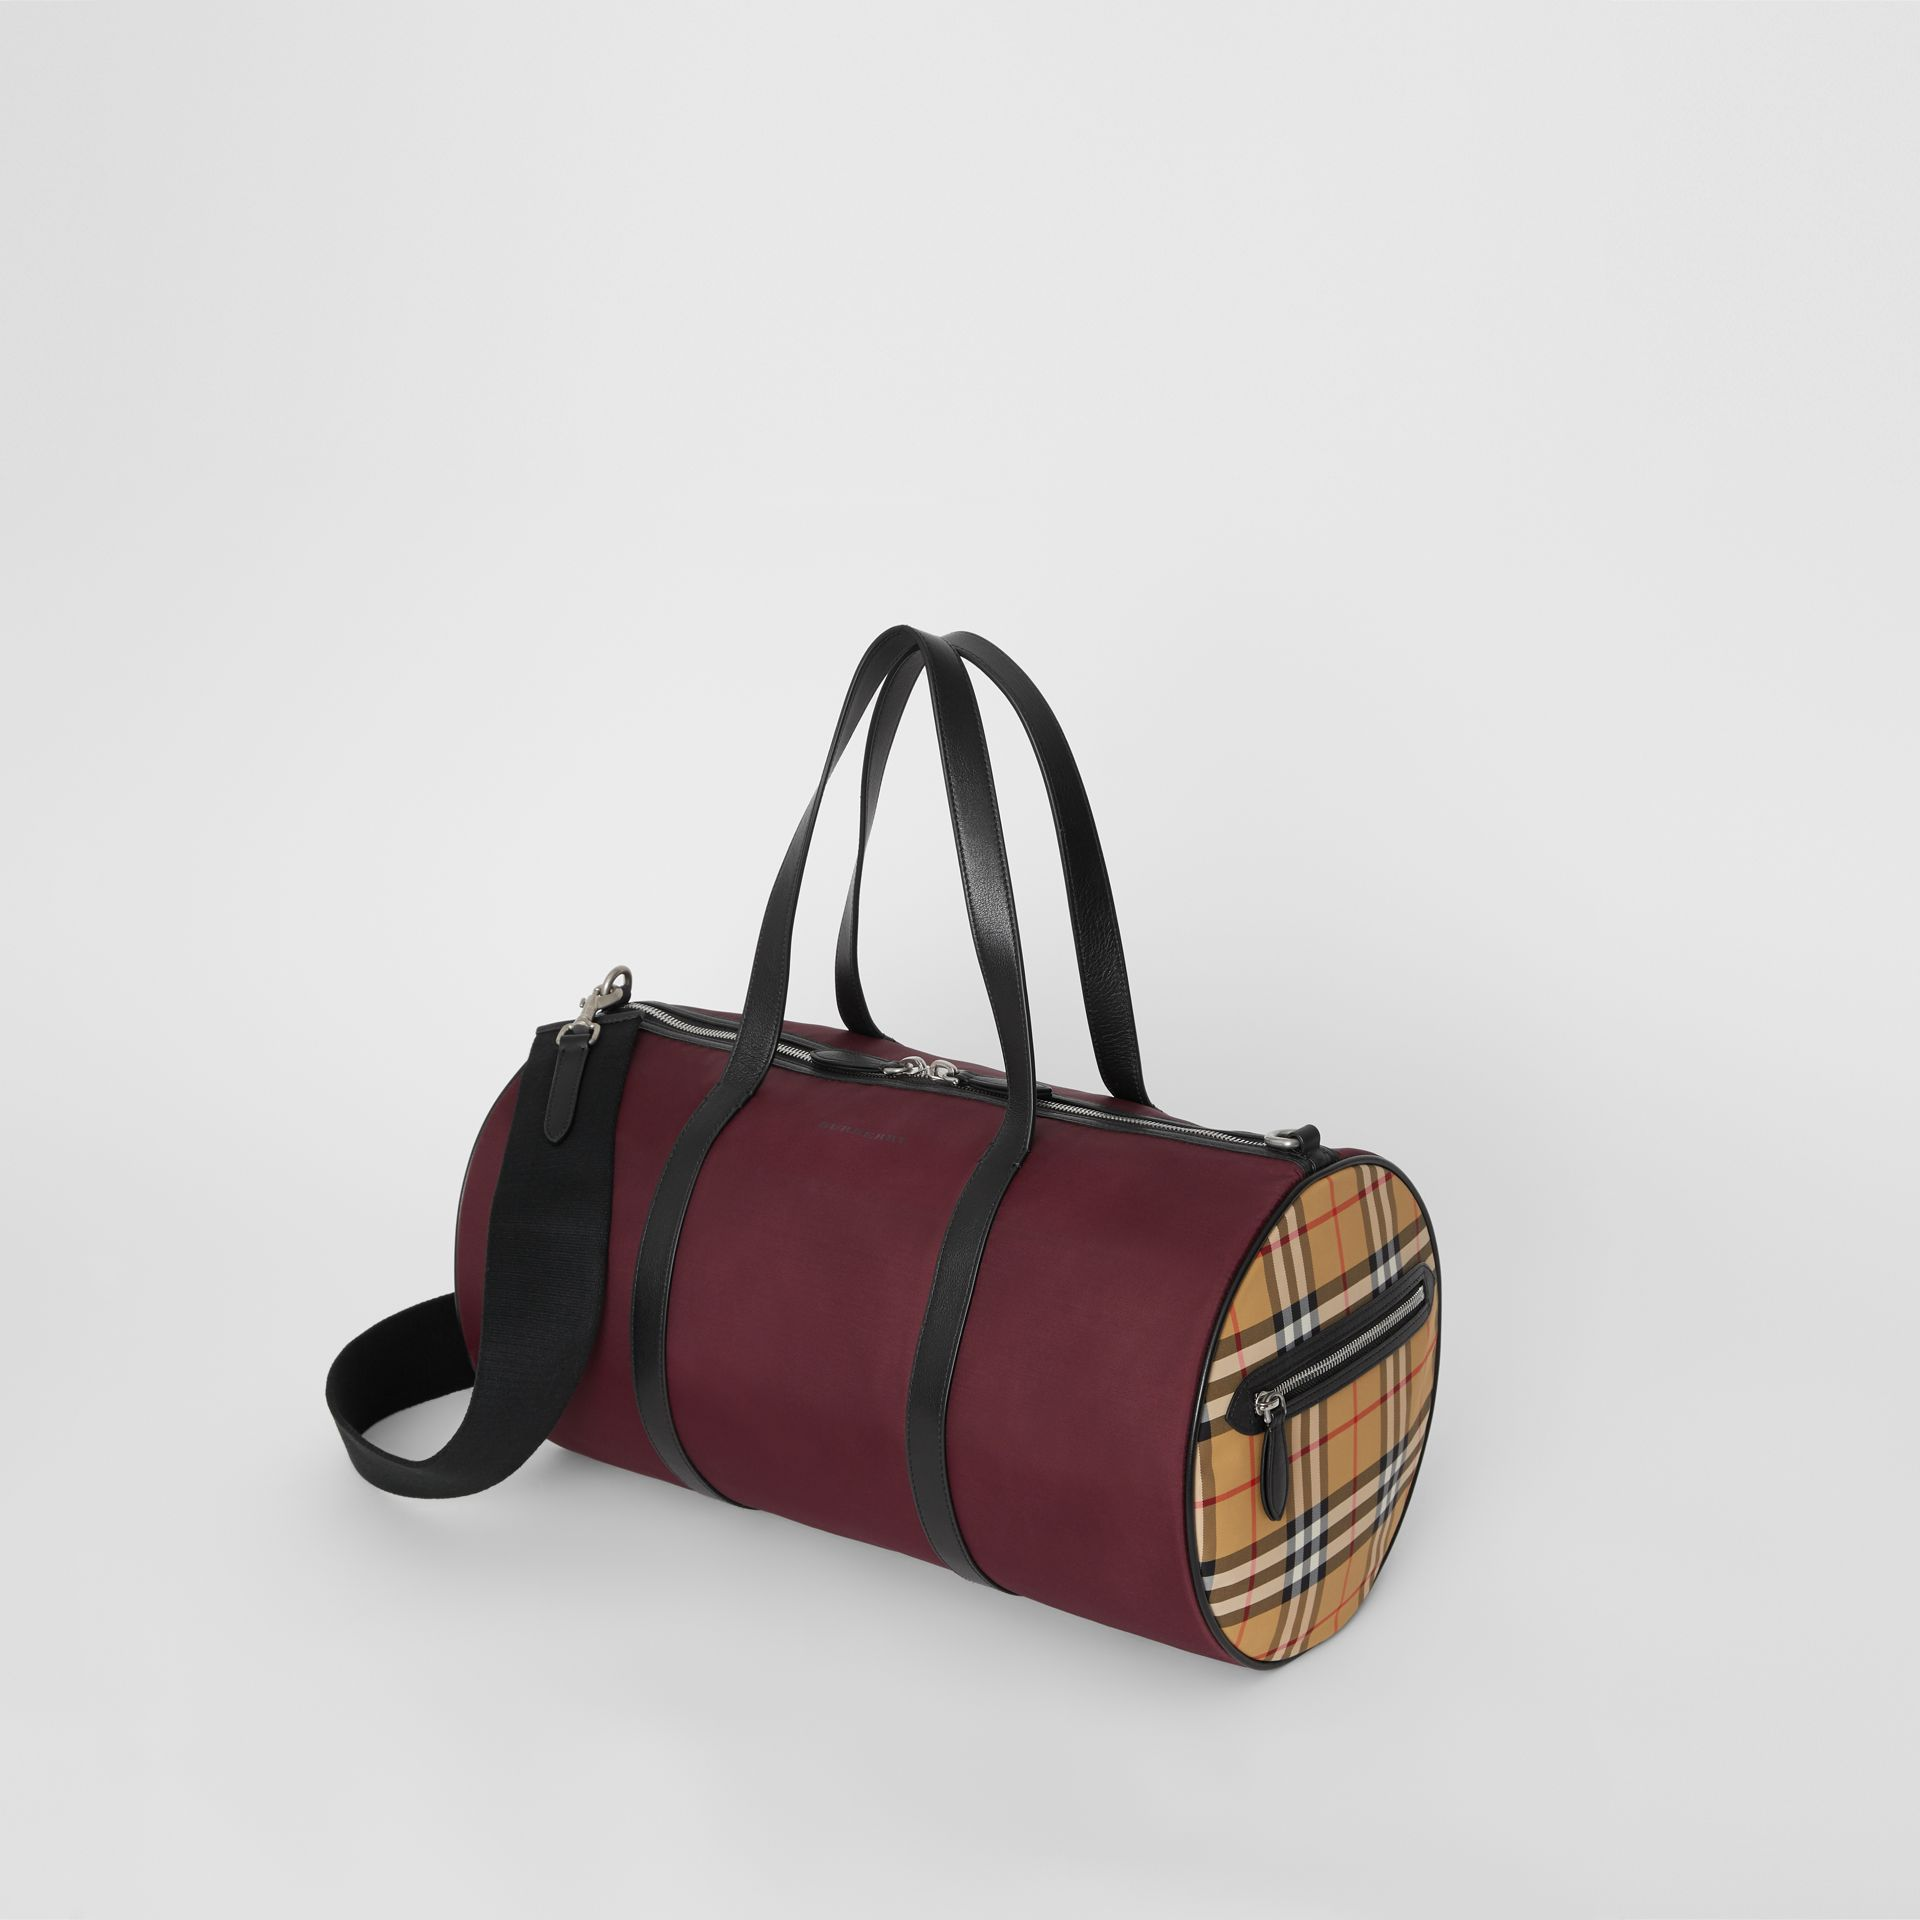 Sac The Barrel moyen en nylon et à motif Vintage check (Oxblood) - Homme | Burberry - photo de la galerie 3